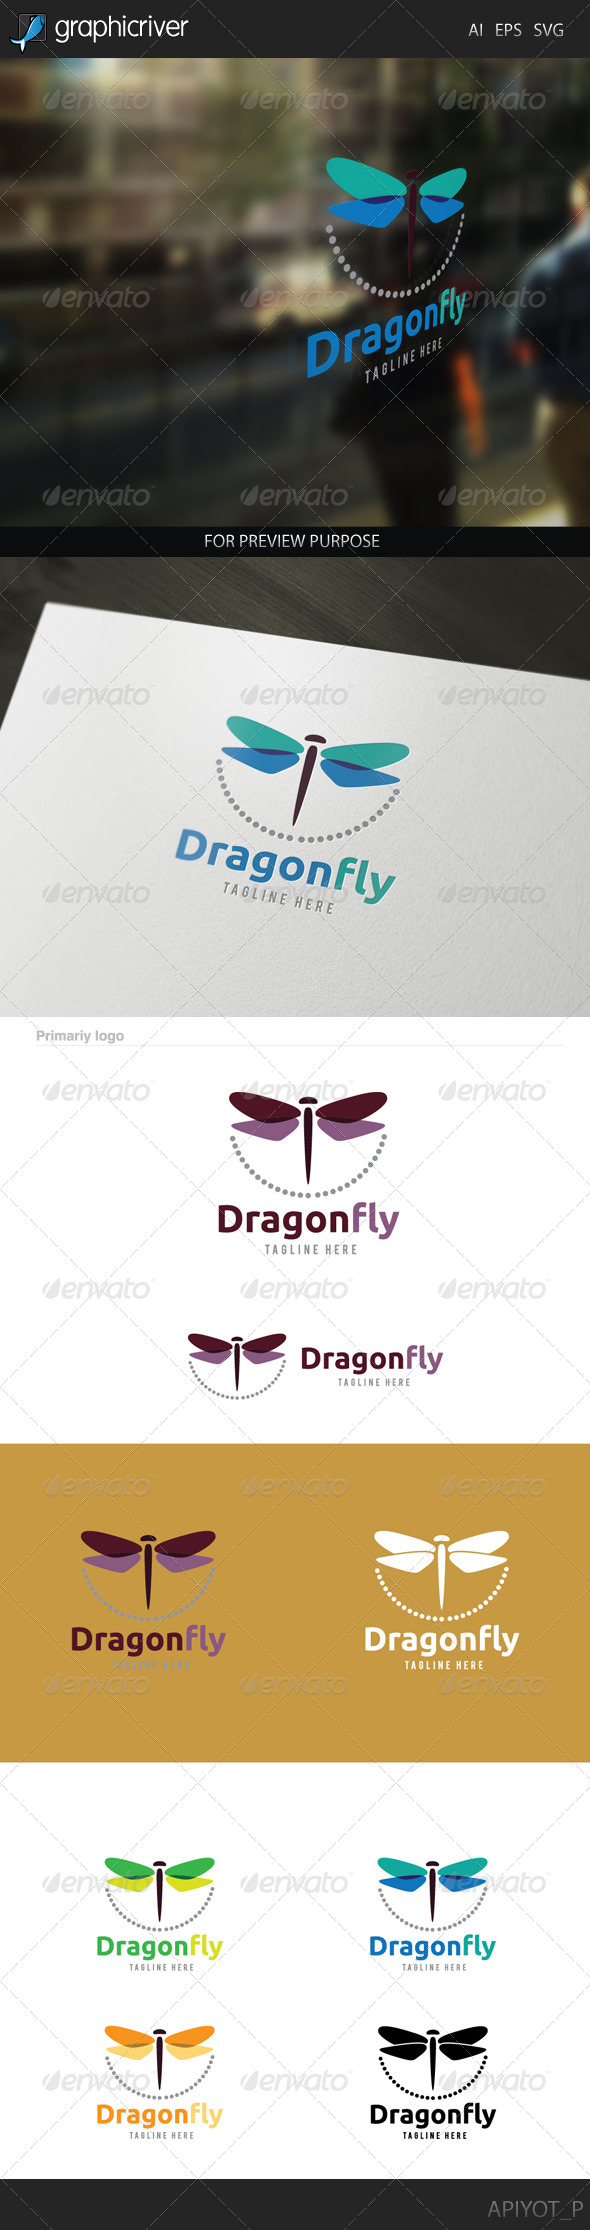 GraphicRiver Dragonfly Logo 8172879